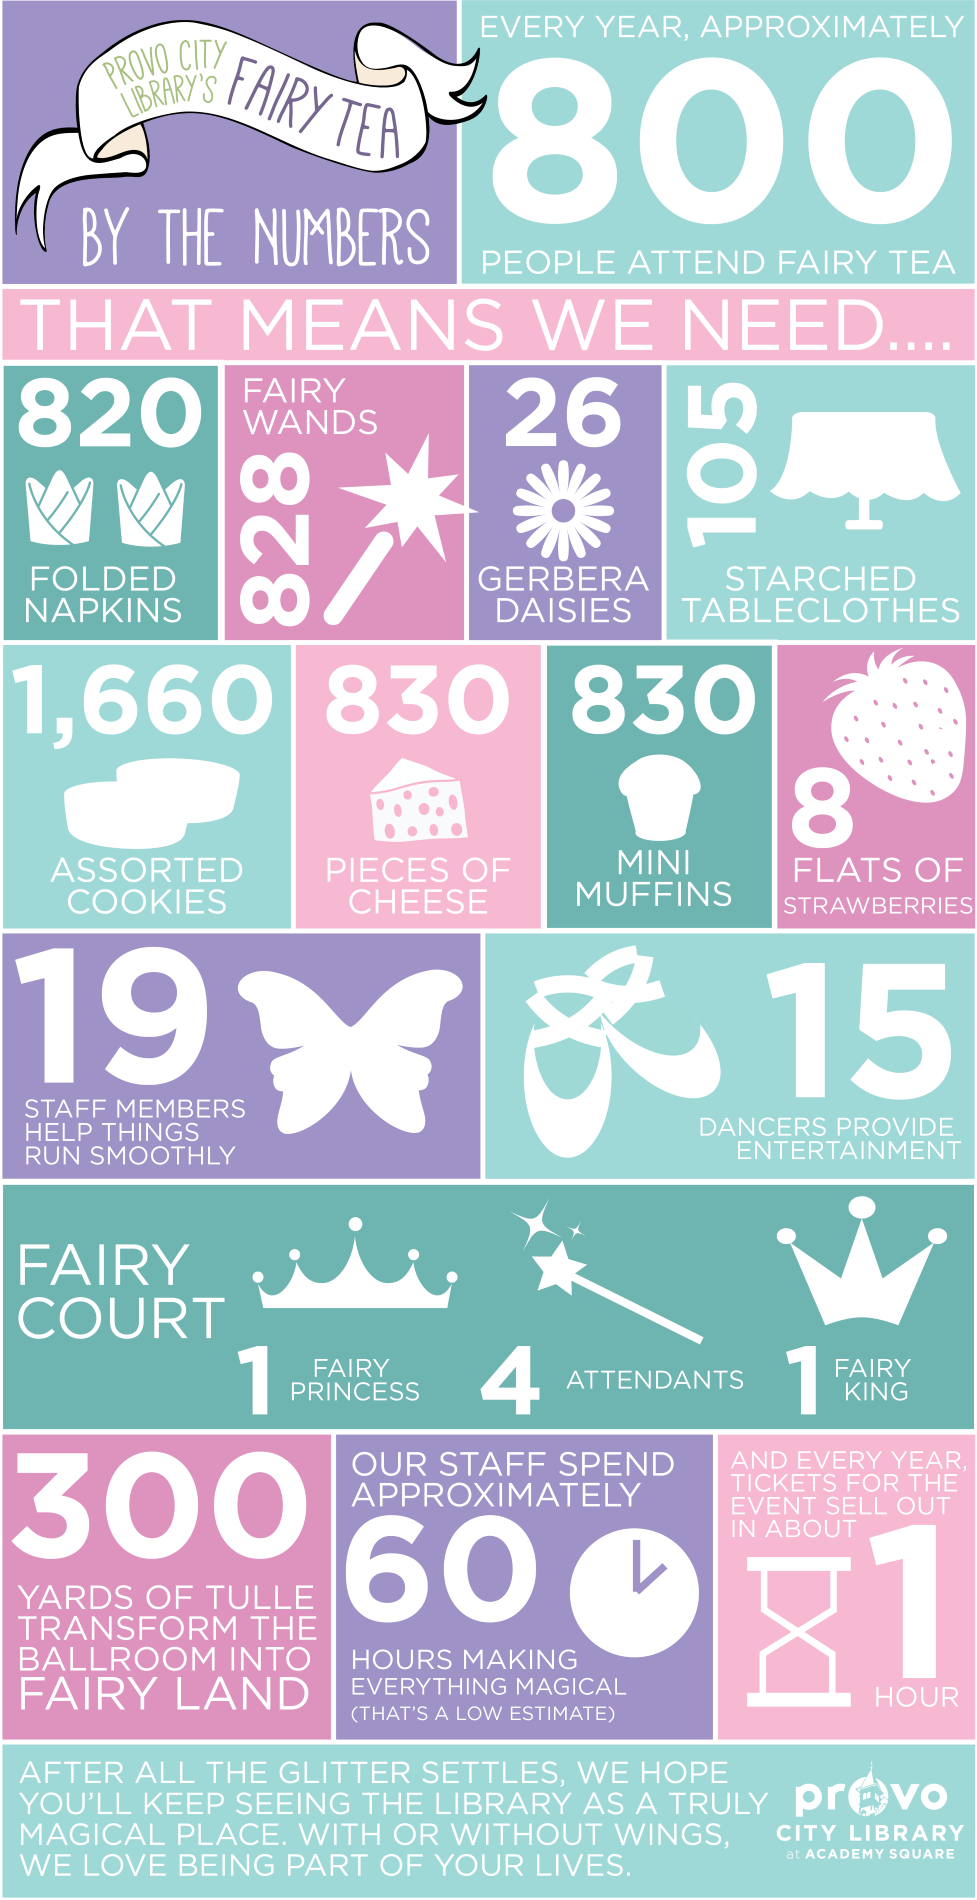 Fairy Tea By the Numbers 01